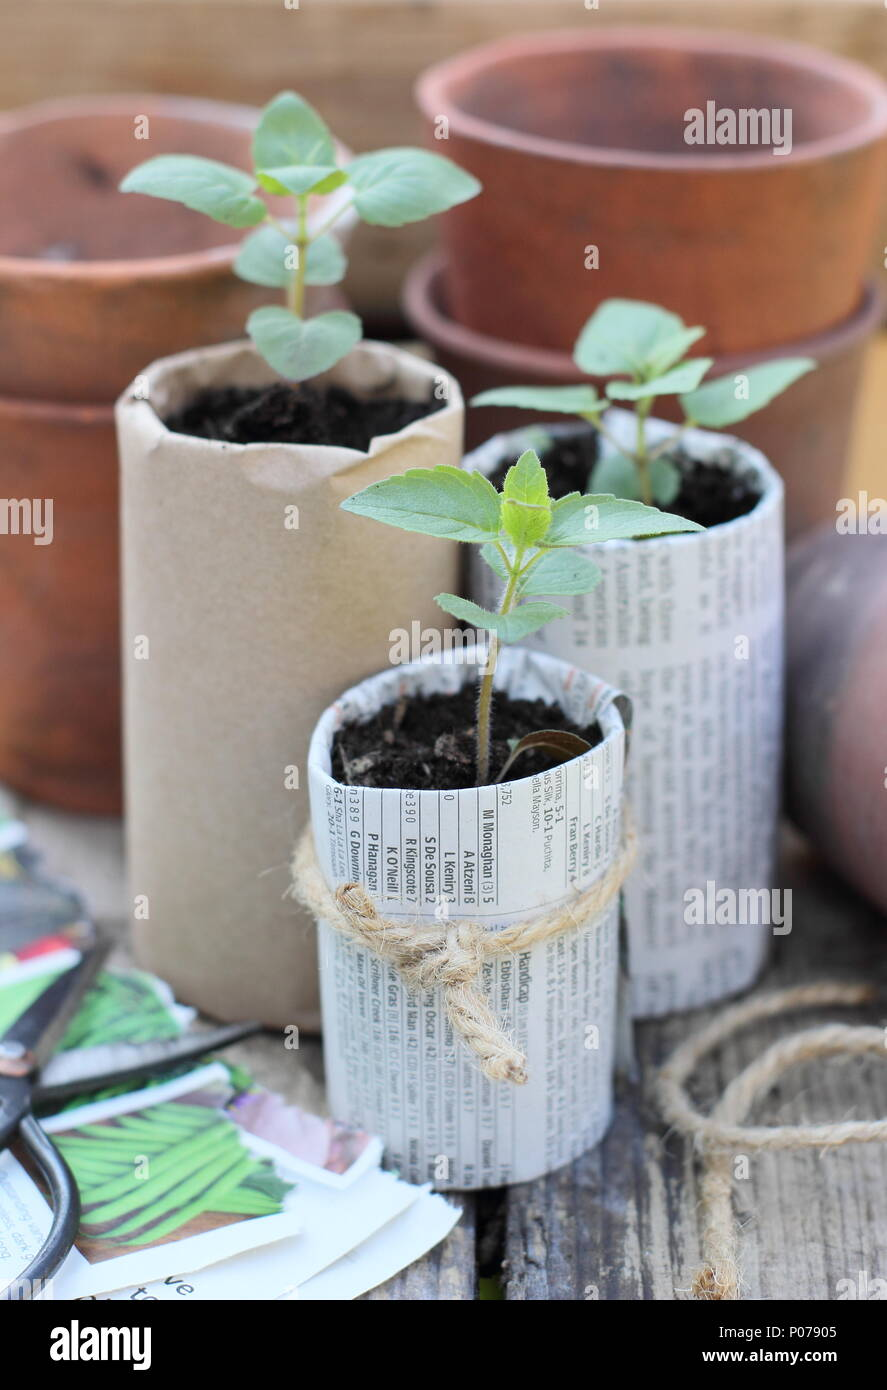 Old clay pots, wooden seed trays and home made biodegradable paper pots containing young plants used to reduce plastic in the garden, England, UK - Stock Image